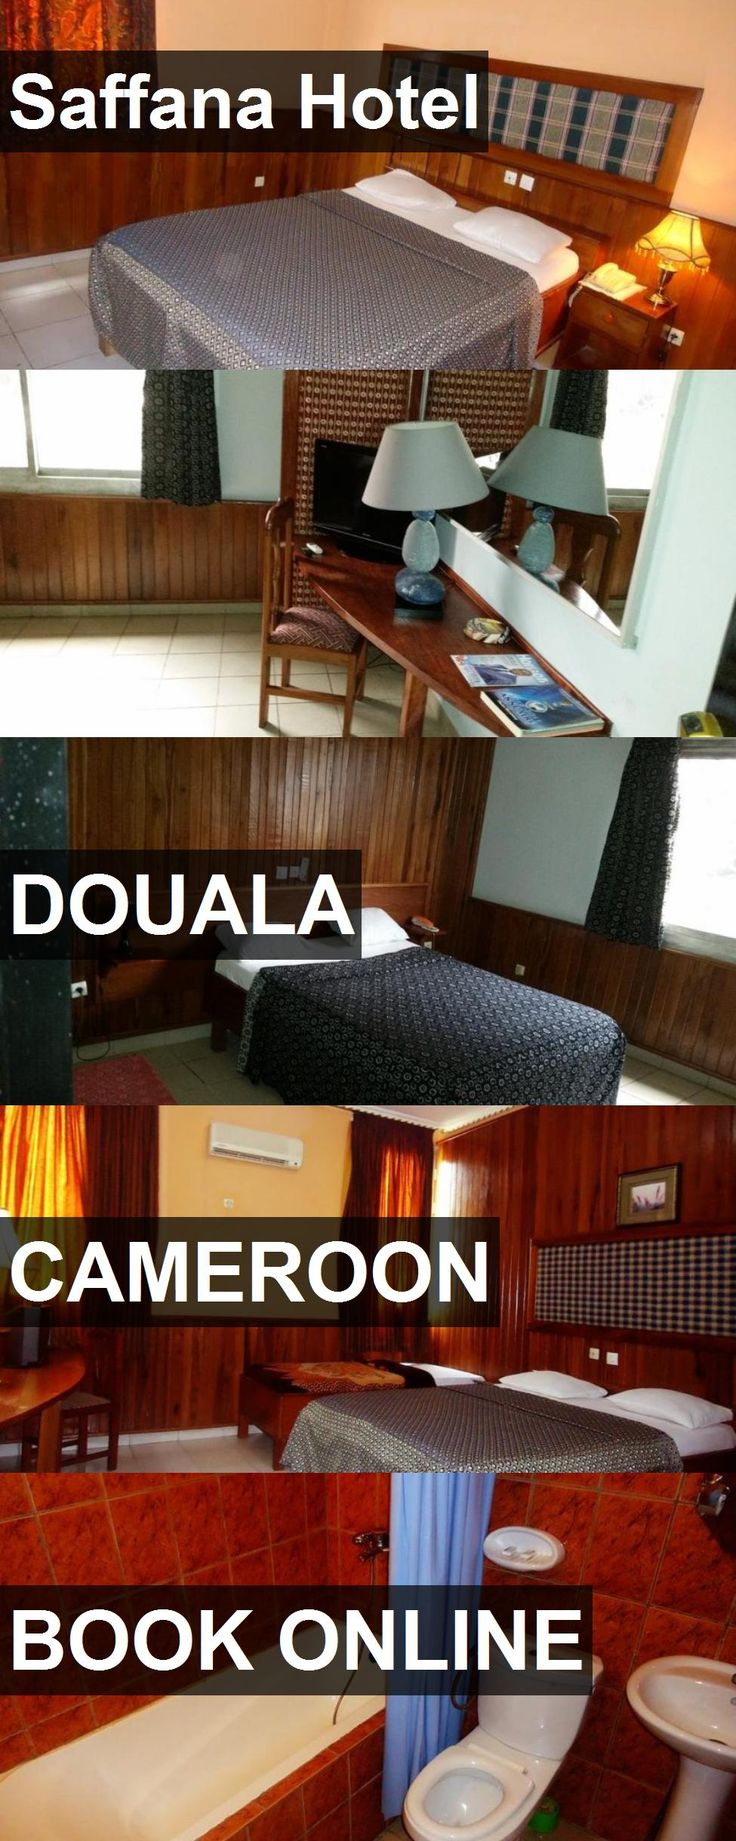 Saffana Hotel in Douala, Cameroon. For more information, photos, reviews and best prices please follow the link. #Cameroon #Douala #travel #vacation #hotel